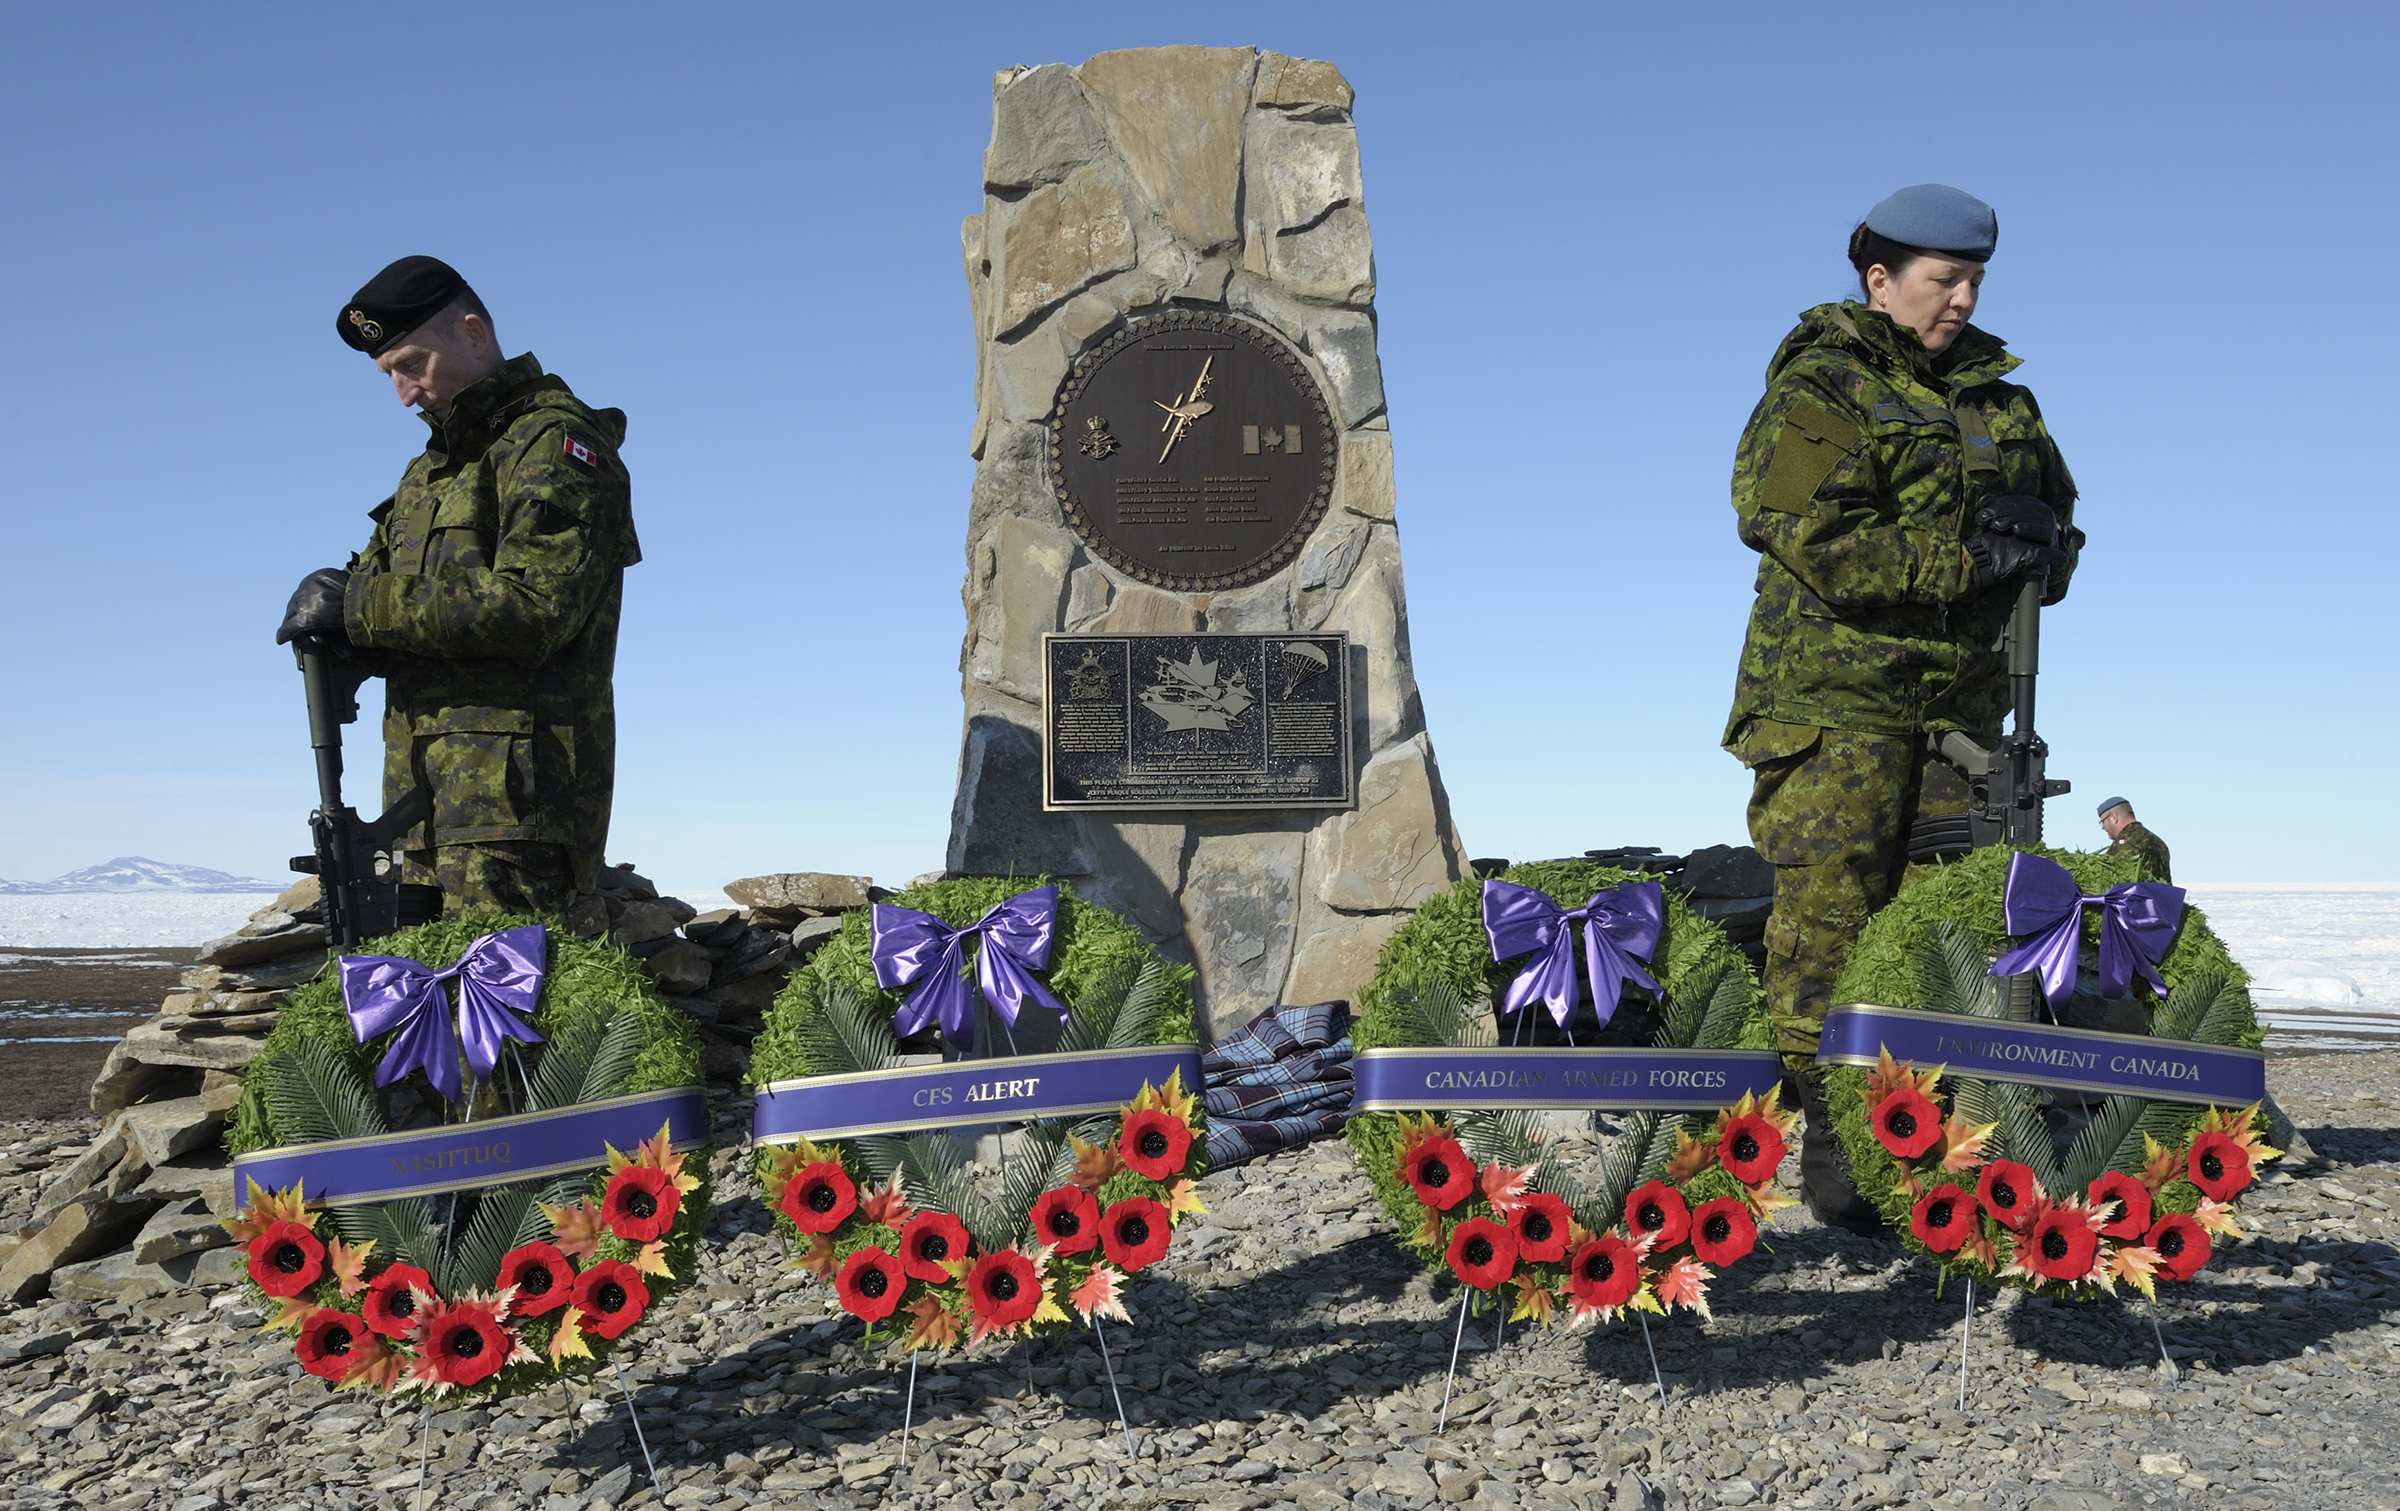 Sentries stand at a stone cairn at CFS Alert that commemorates the crash of Boxtop 22. A new plaque, identical to the one on the new cairn that now stands at 8 Wing Trenton, was added to the Alert cairn and unveiled in June 2016. PHOTO: Sergeant Paz Quillé, FA02-2016-0016-27